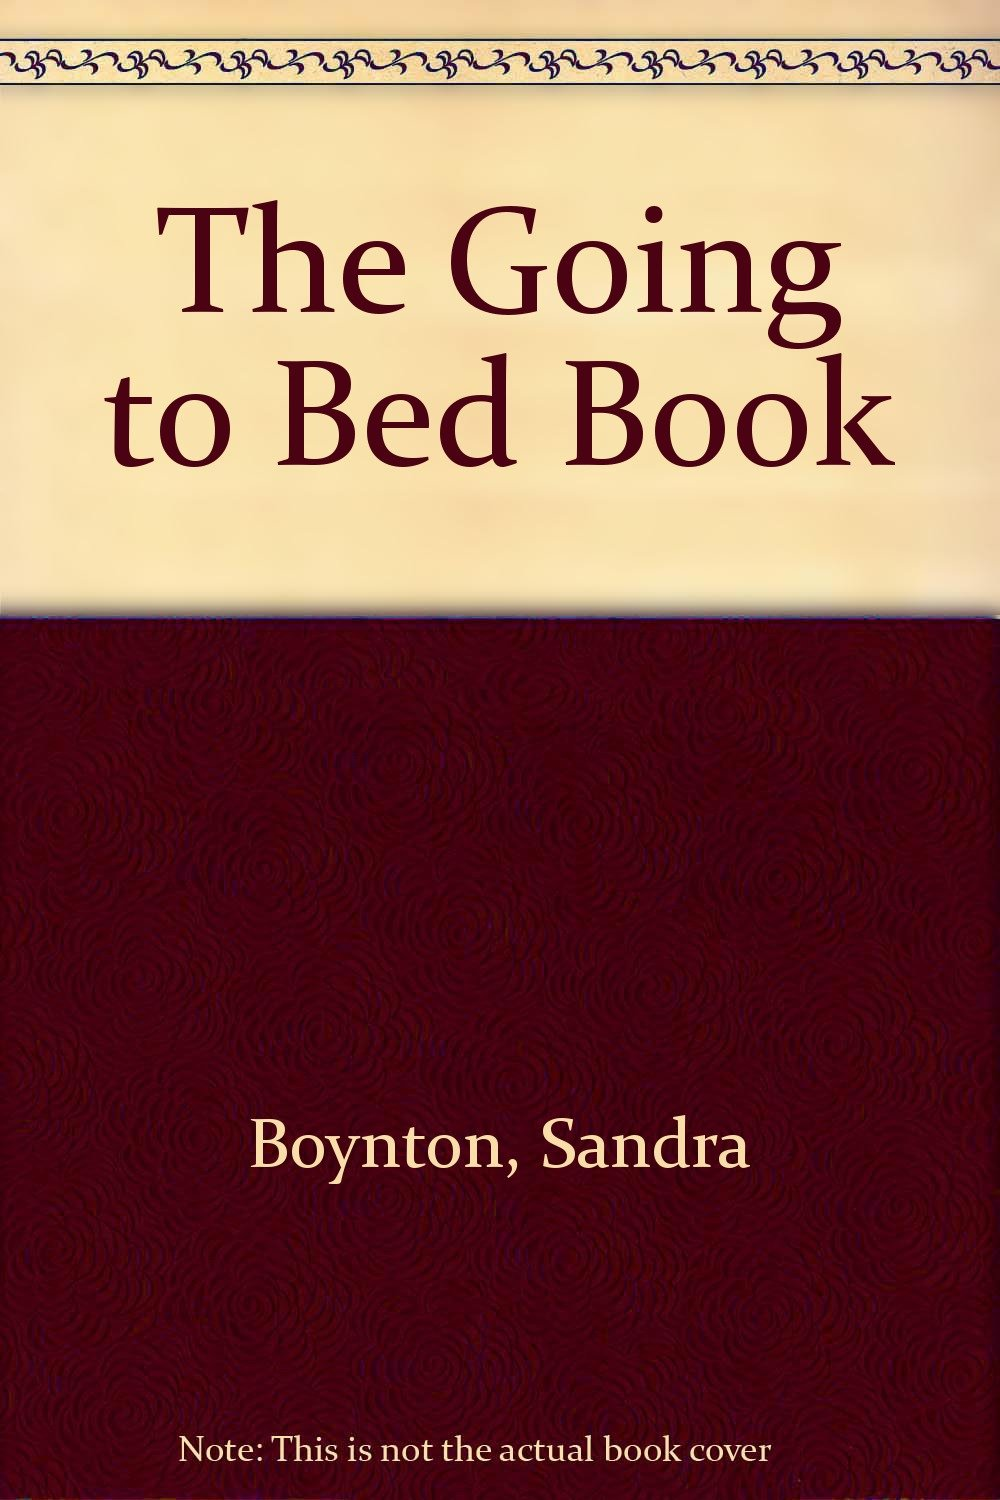 The Going to Bed Book ISBN-13 9780416455205